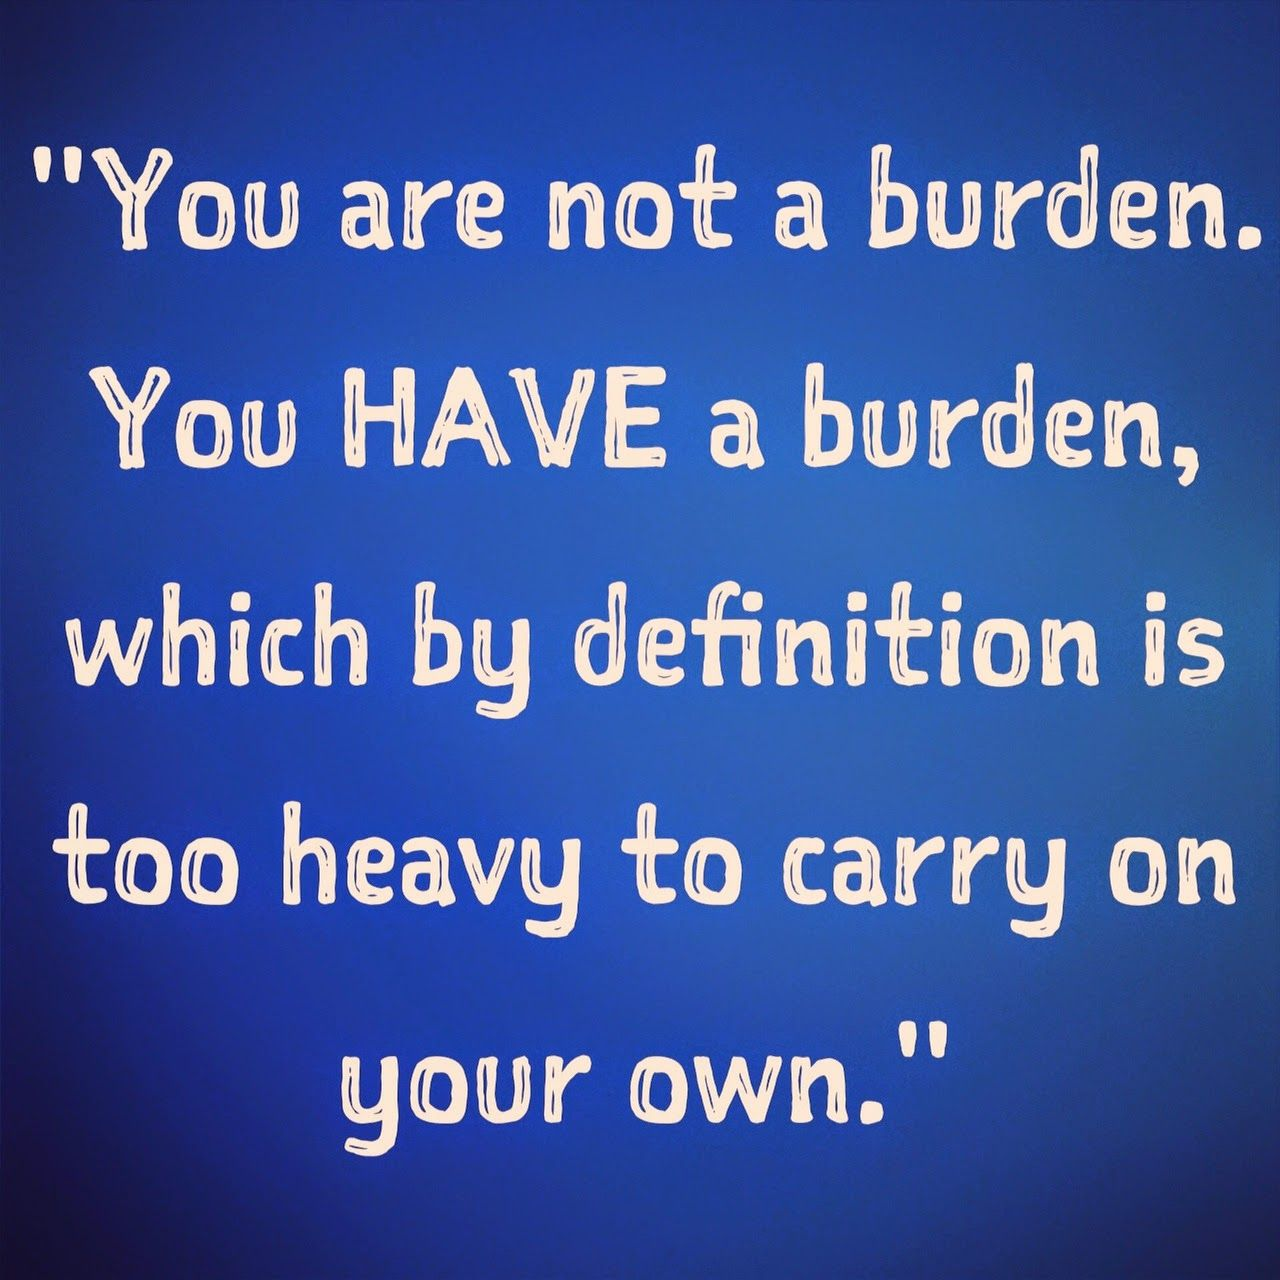 Chronic Pain Quotes ❤❤ I Will Always Be Here With You To Carry Your Burden When You